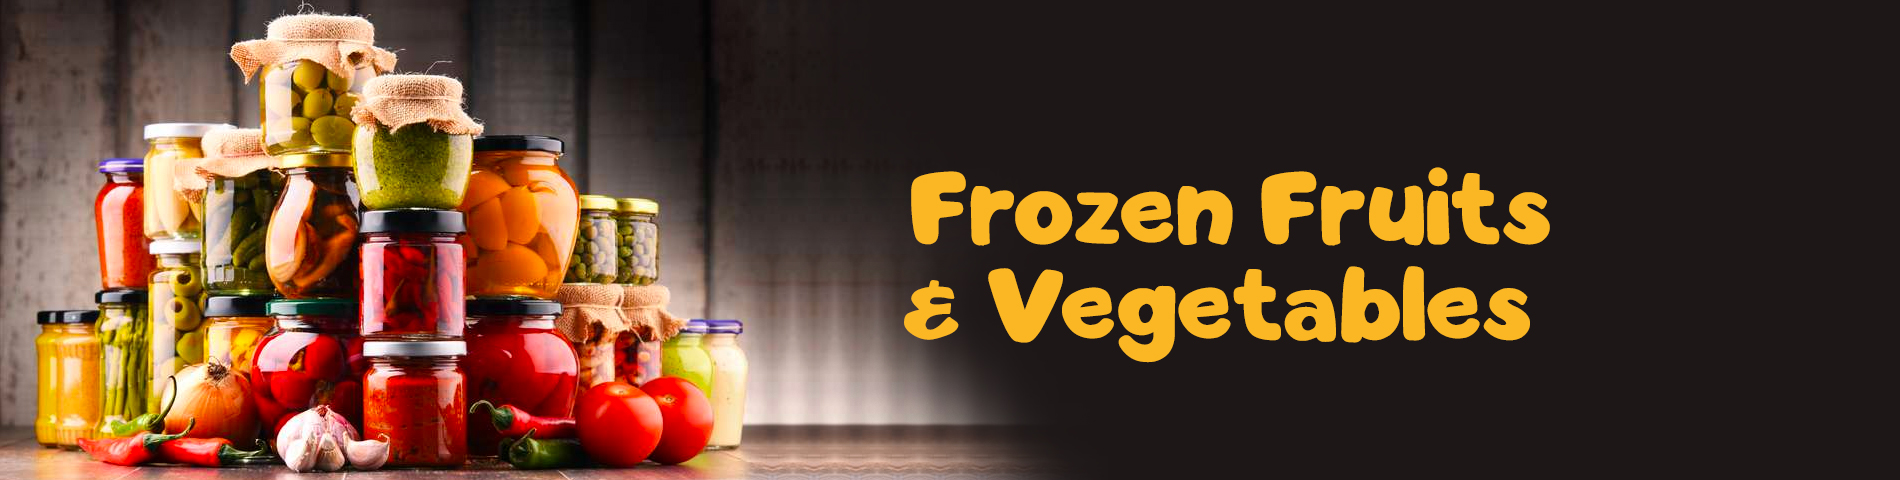 Frozen Fruits & Vegetables